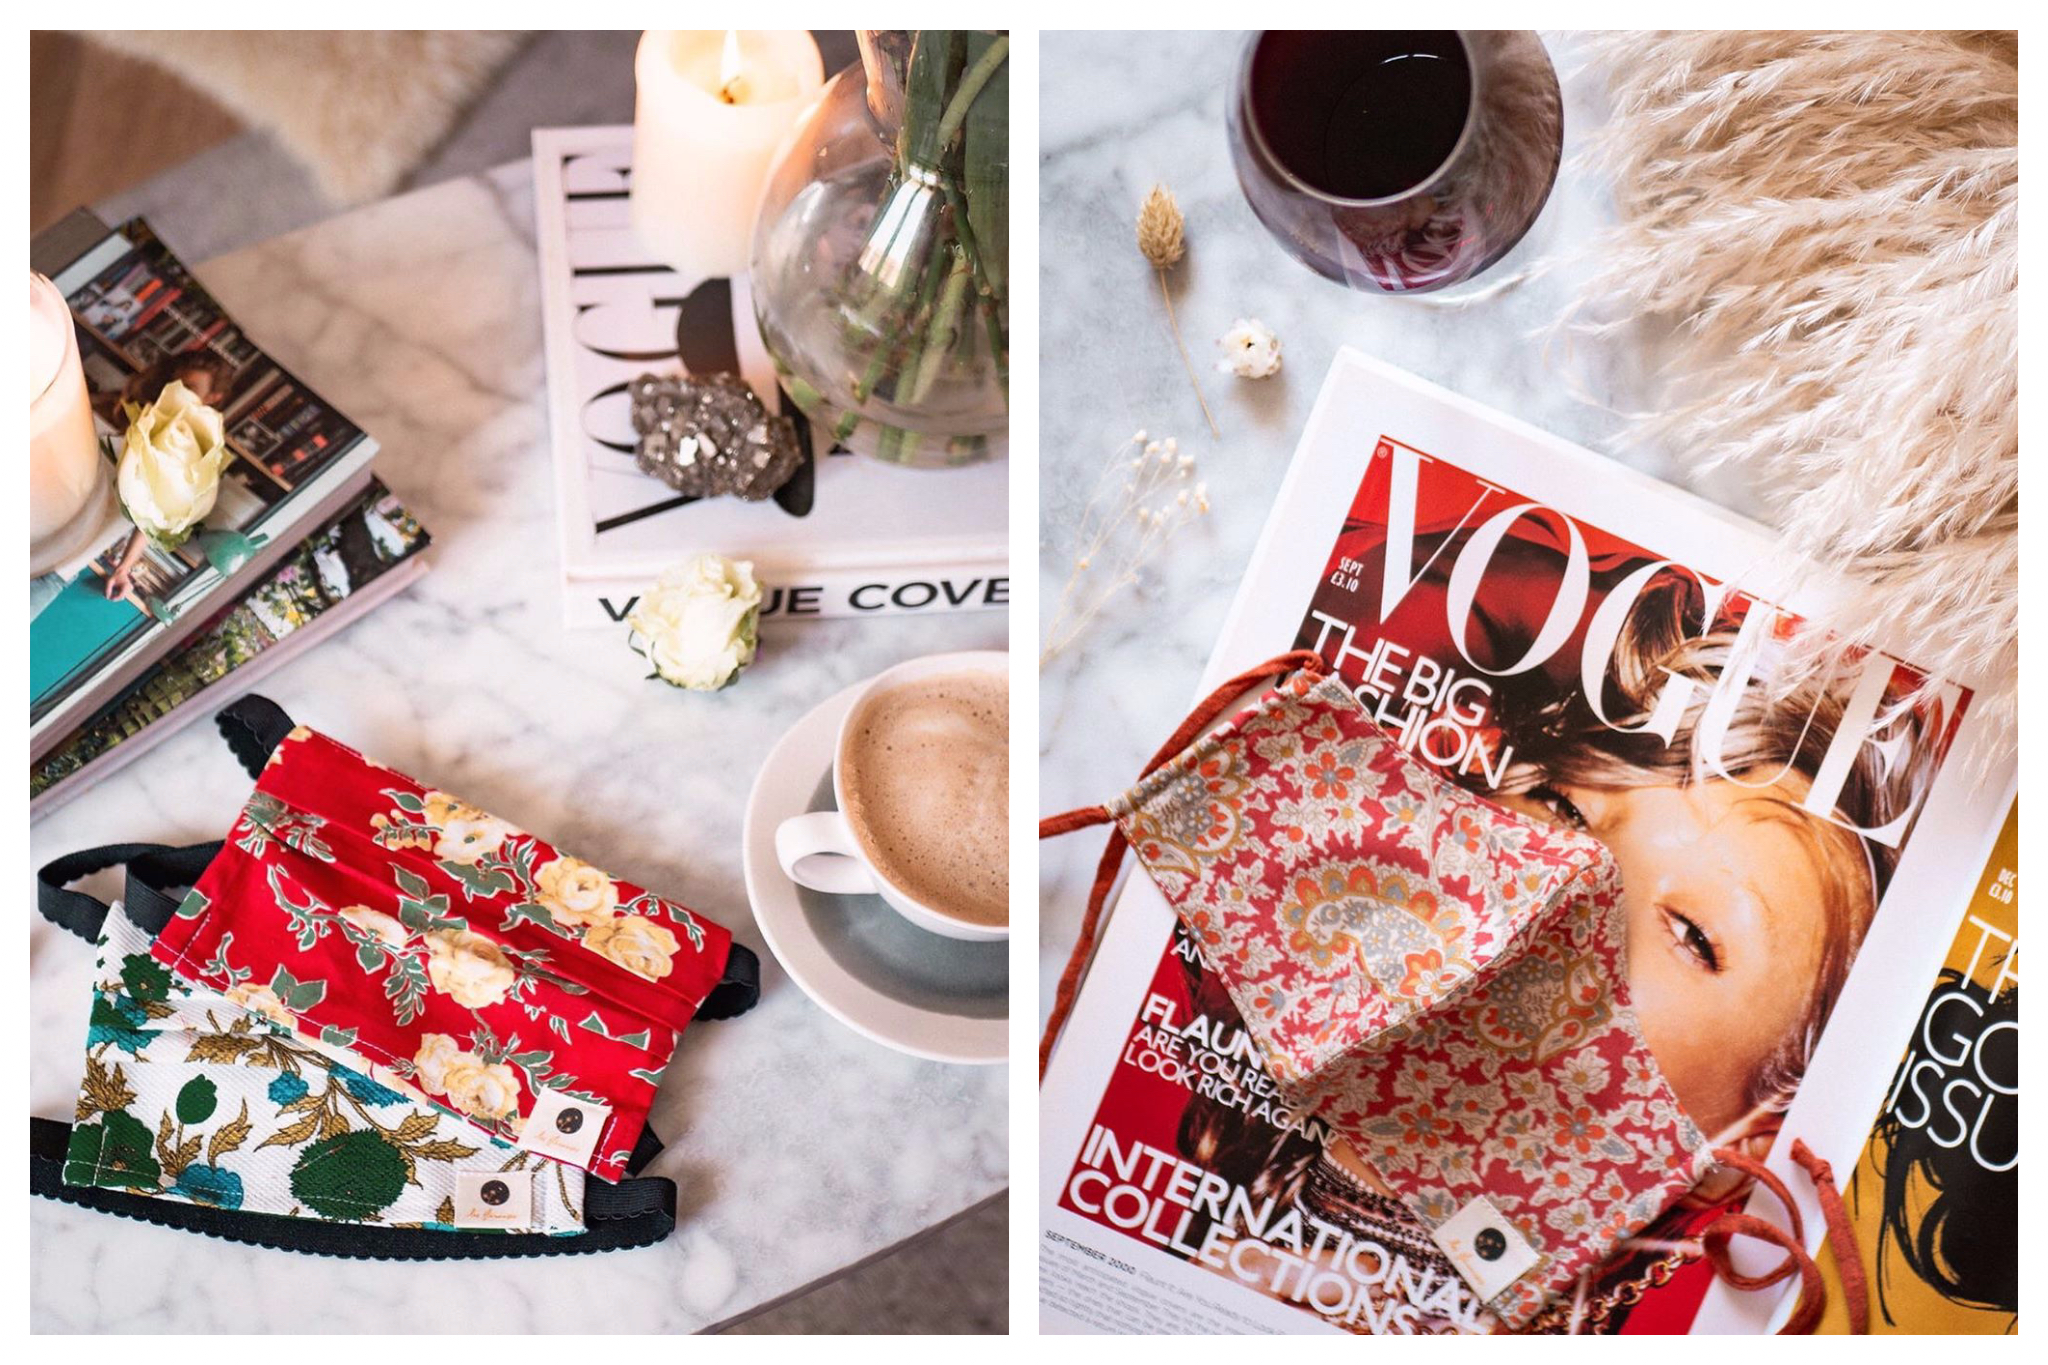 Left: a white blue and green floral face mask and a red and yellow floral face mask on a marble table next to a coffee, some magazines, candles and flowers.  Right: a red and orange and beige floral face mask on a marble table with a Vogue magazine, dried flowers and a black tea.